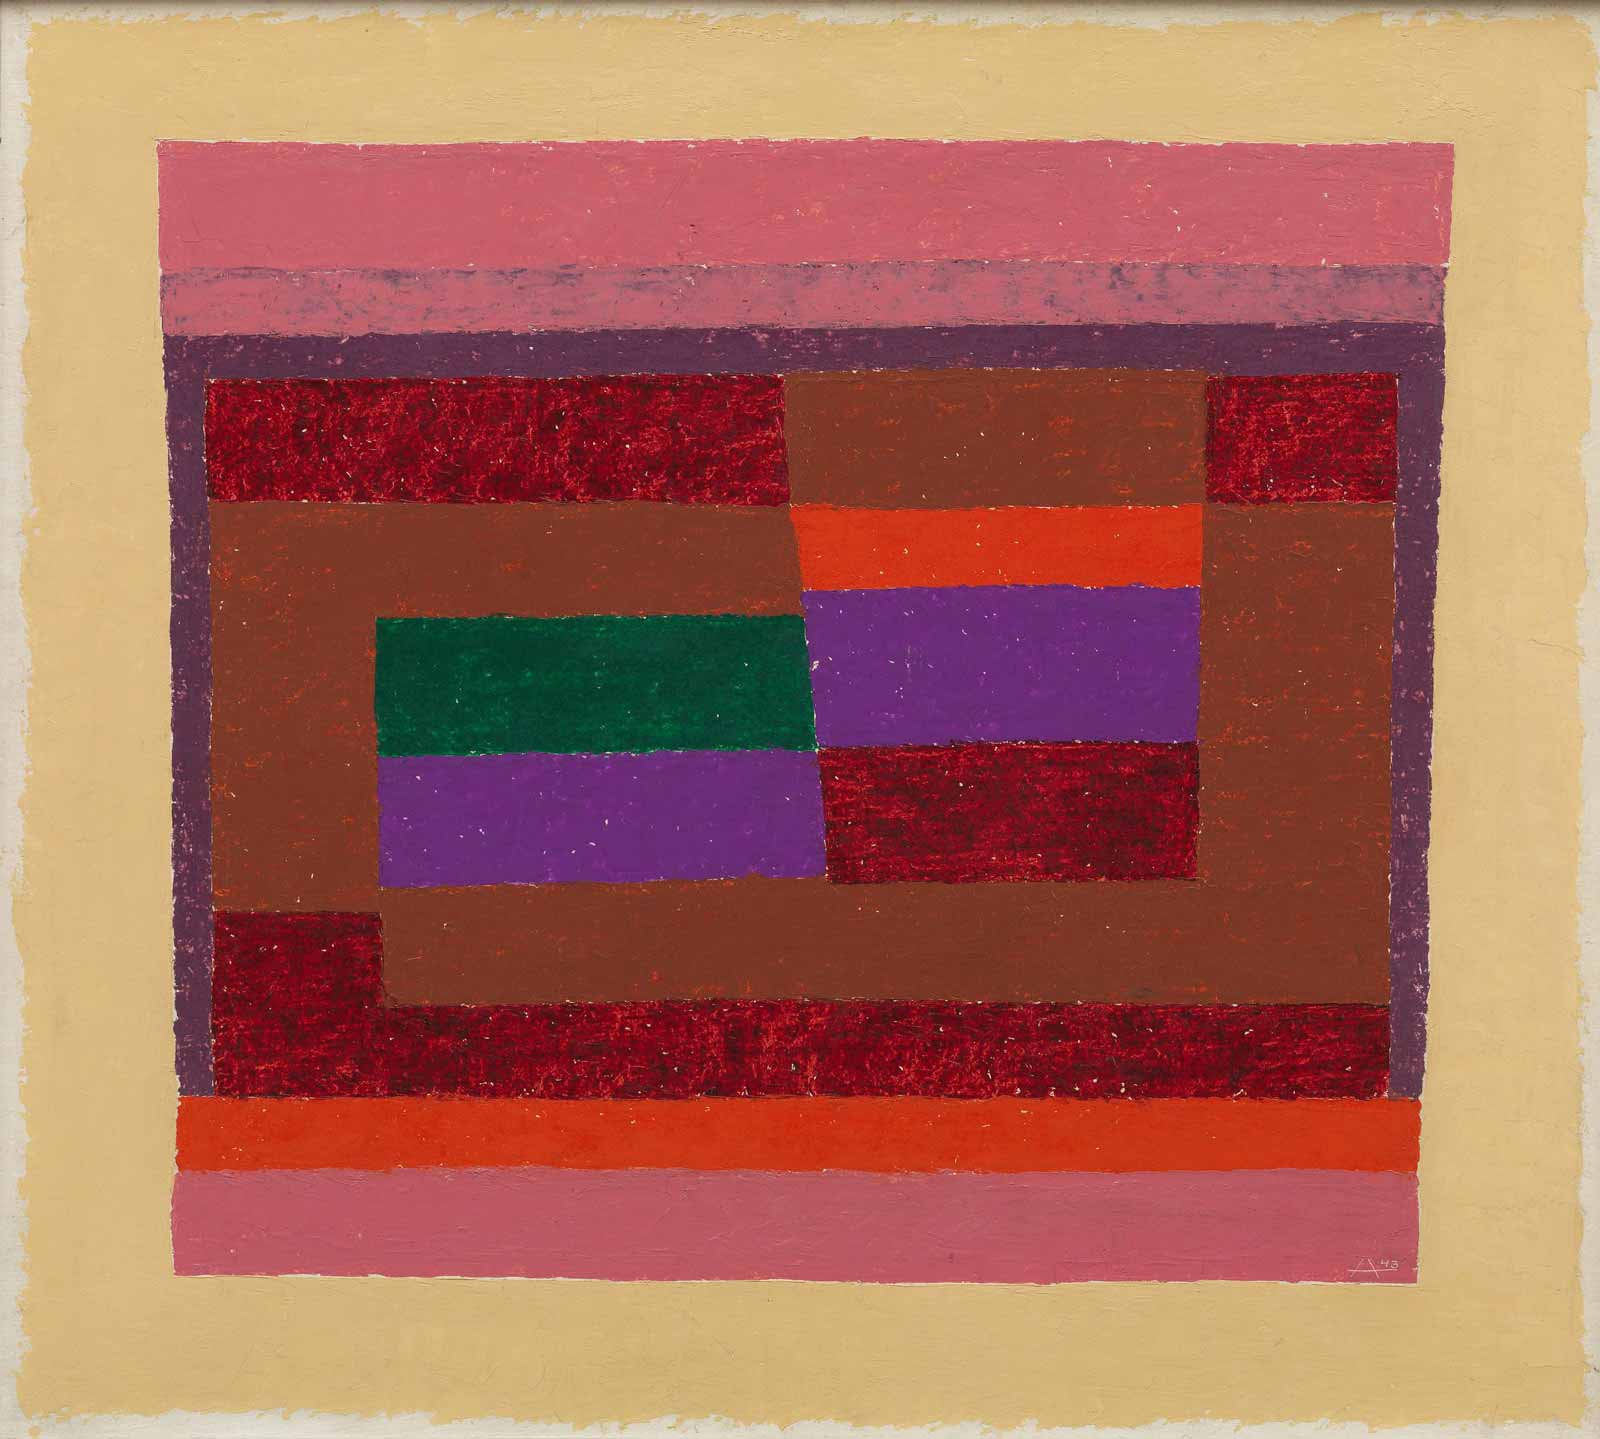 Josef Albers: Memento, 1943 (courtesy of the Guggenheim Museum/Estate of Karl Nierendorf)